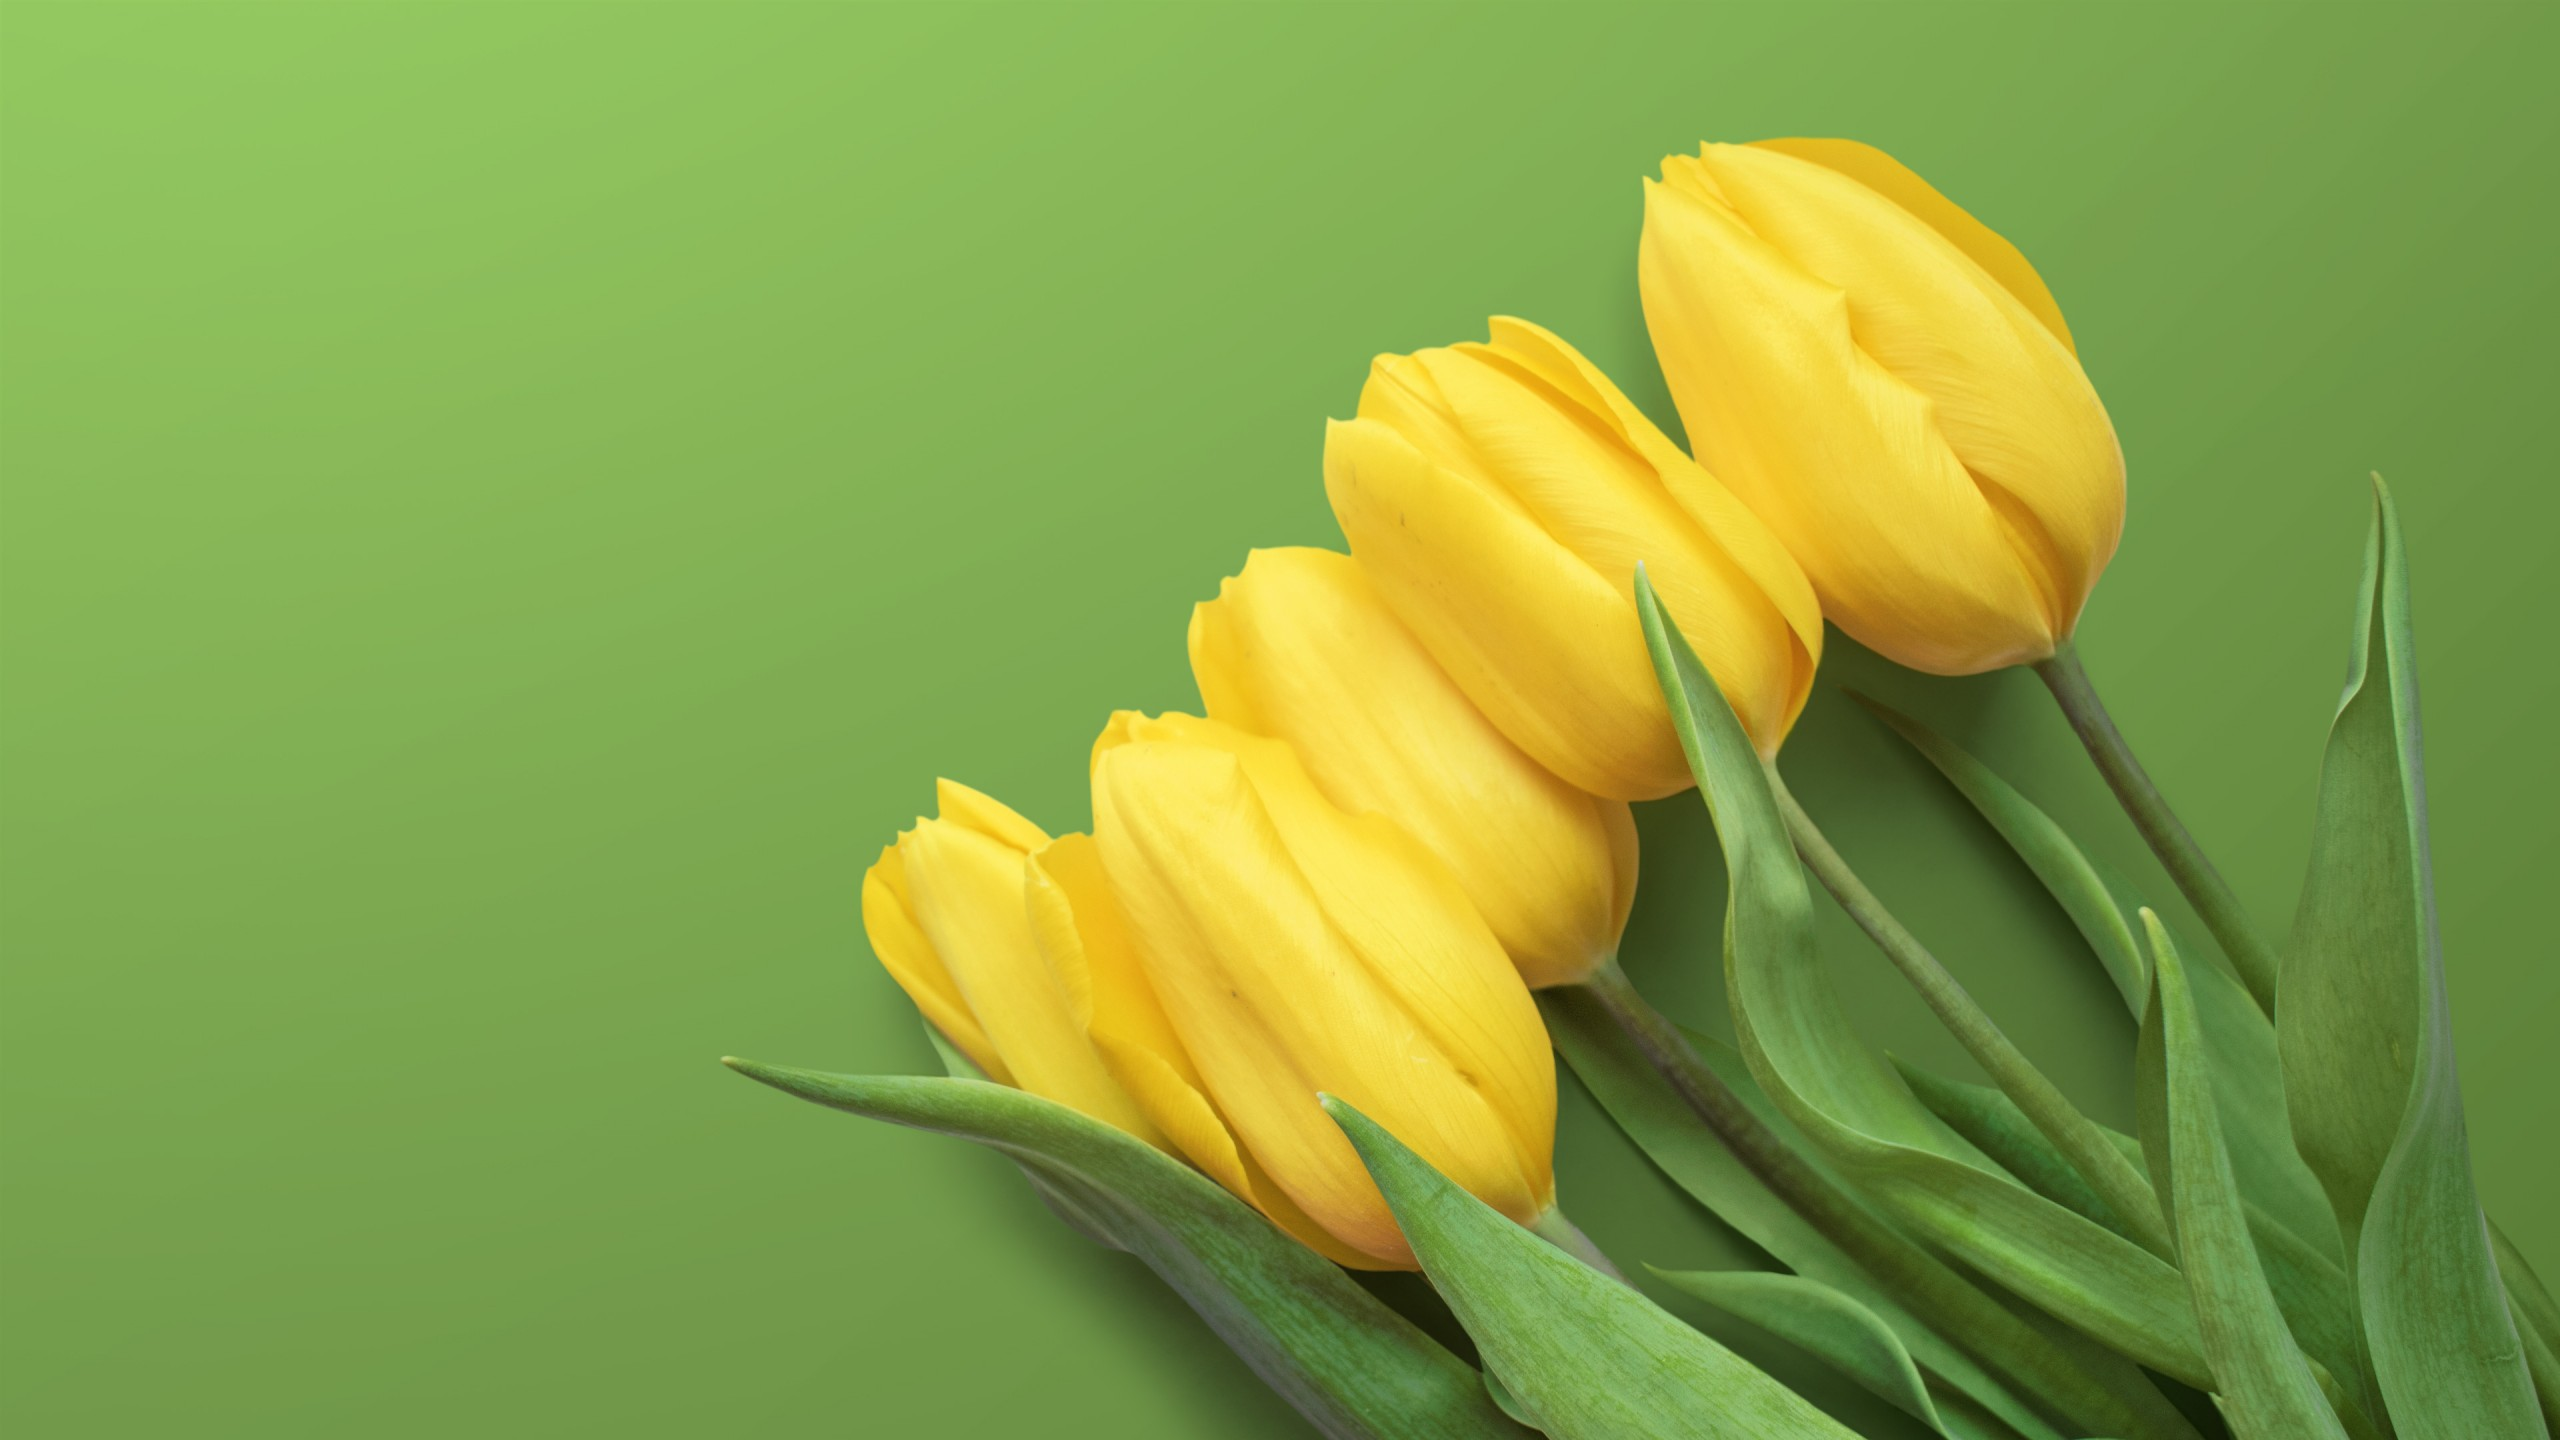 Yellow Tulips 4k Wallpaper Youtube Cover Photo Hd